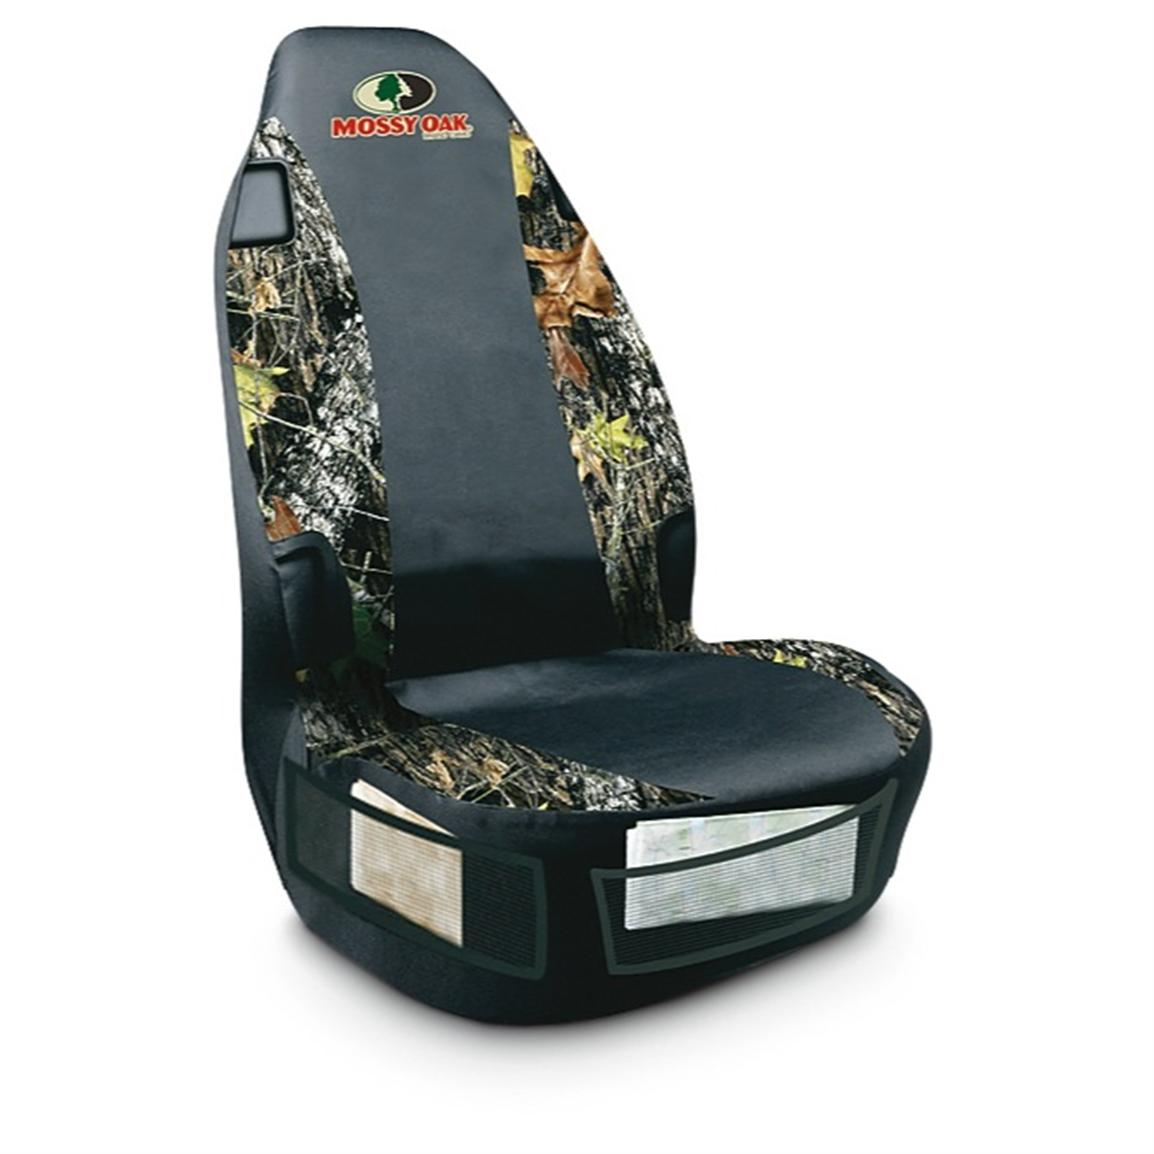 Bucket Seat Cover, Mossy Oak®